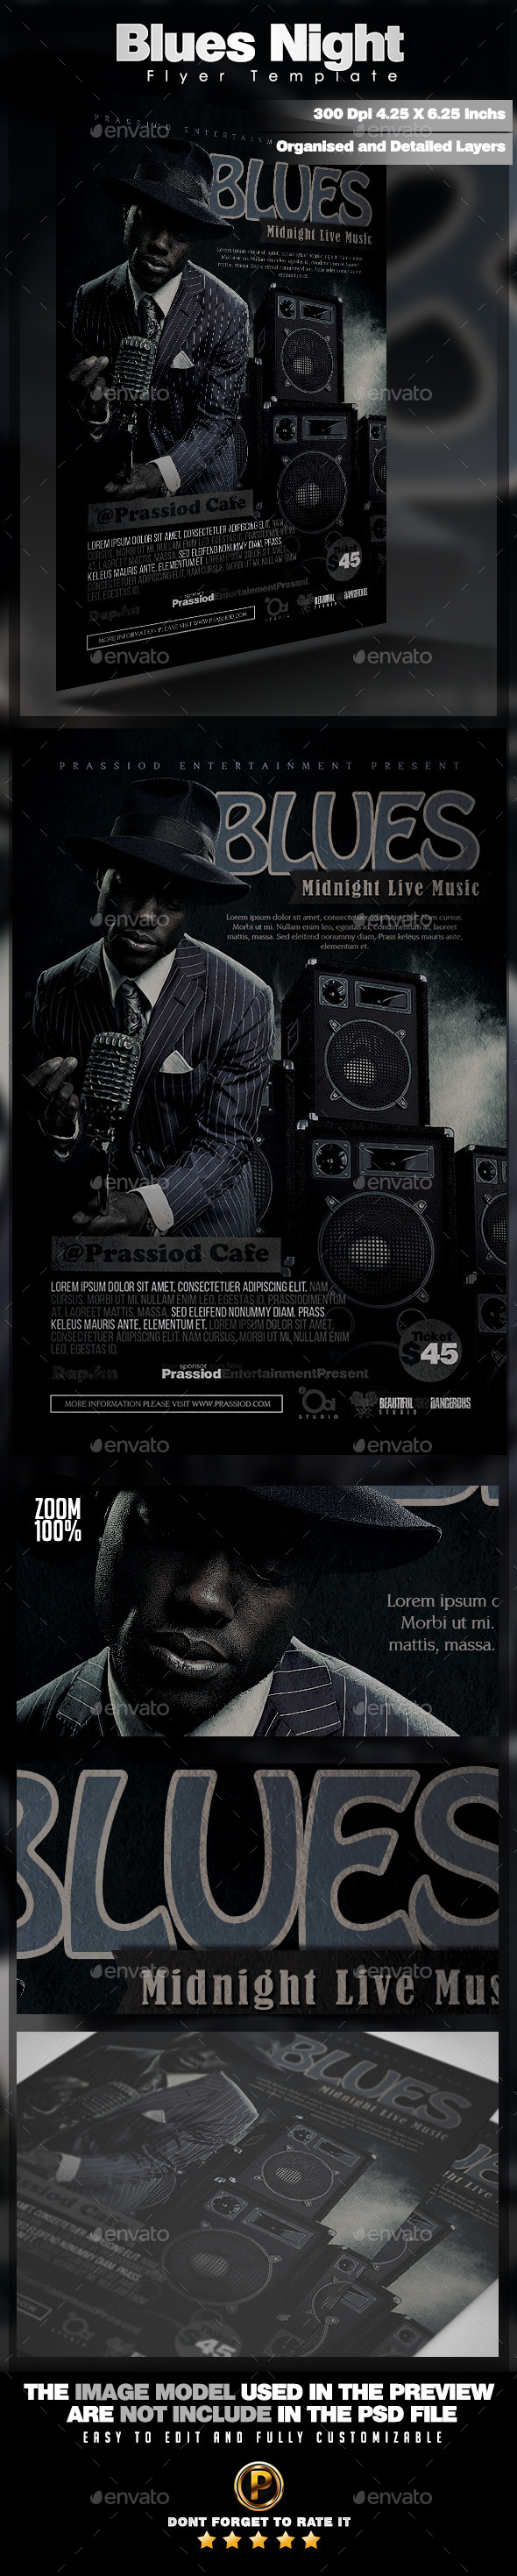 Blues Night Flyer Template - Concerts Events